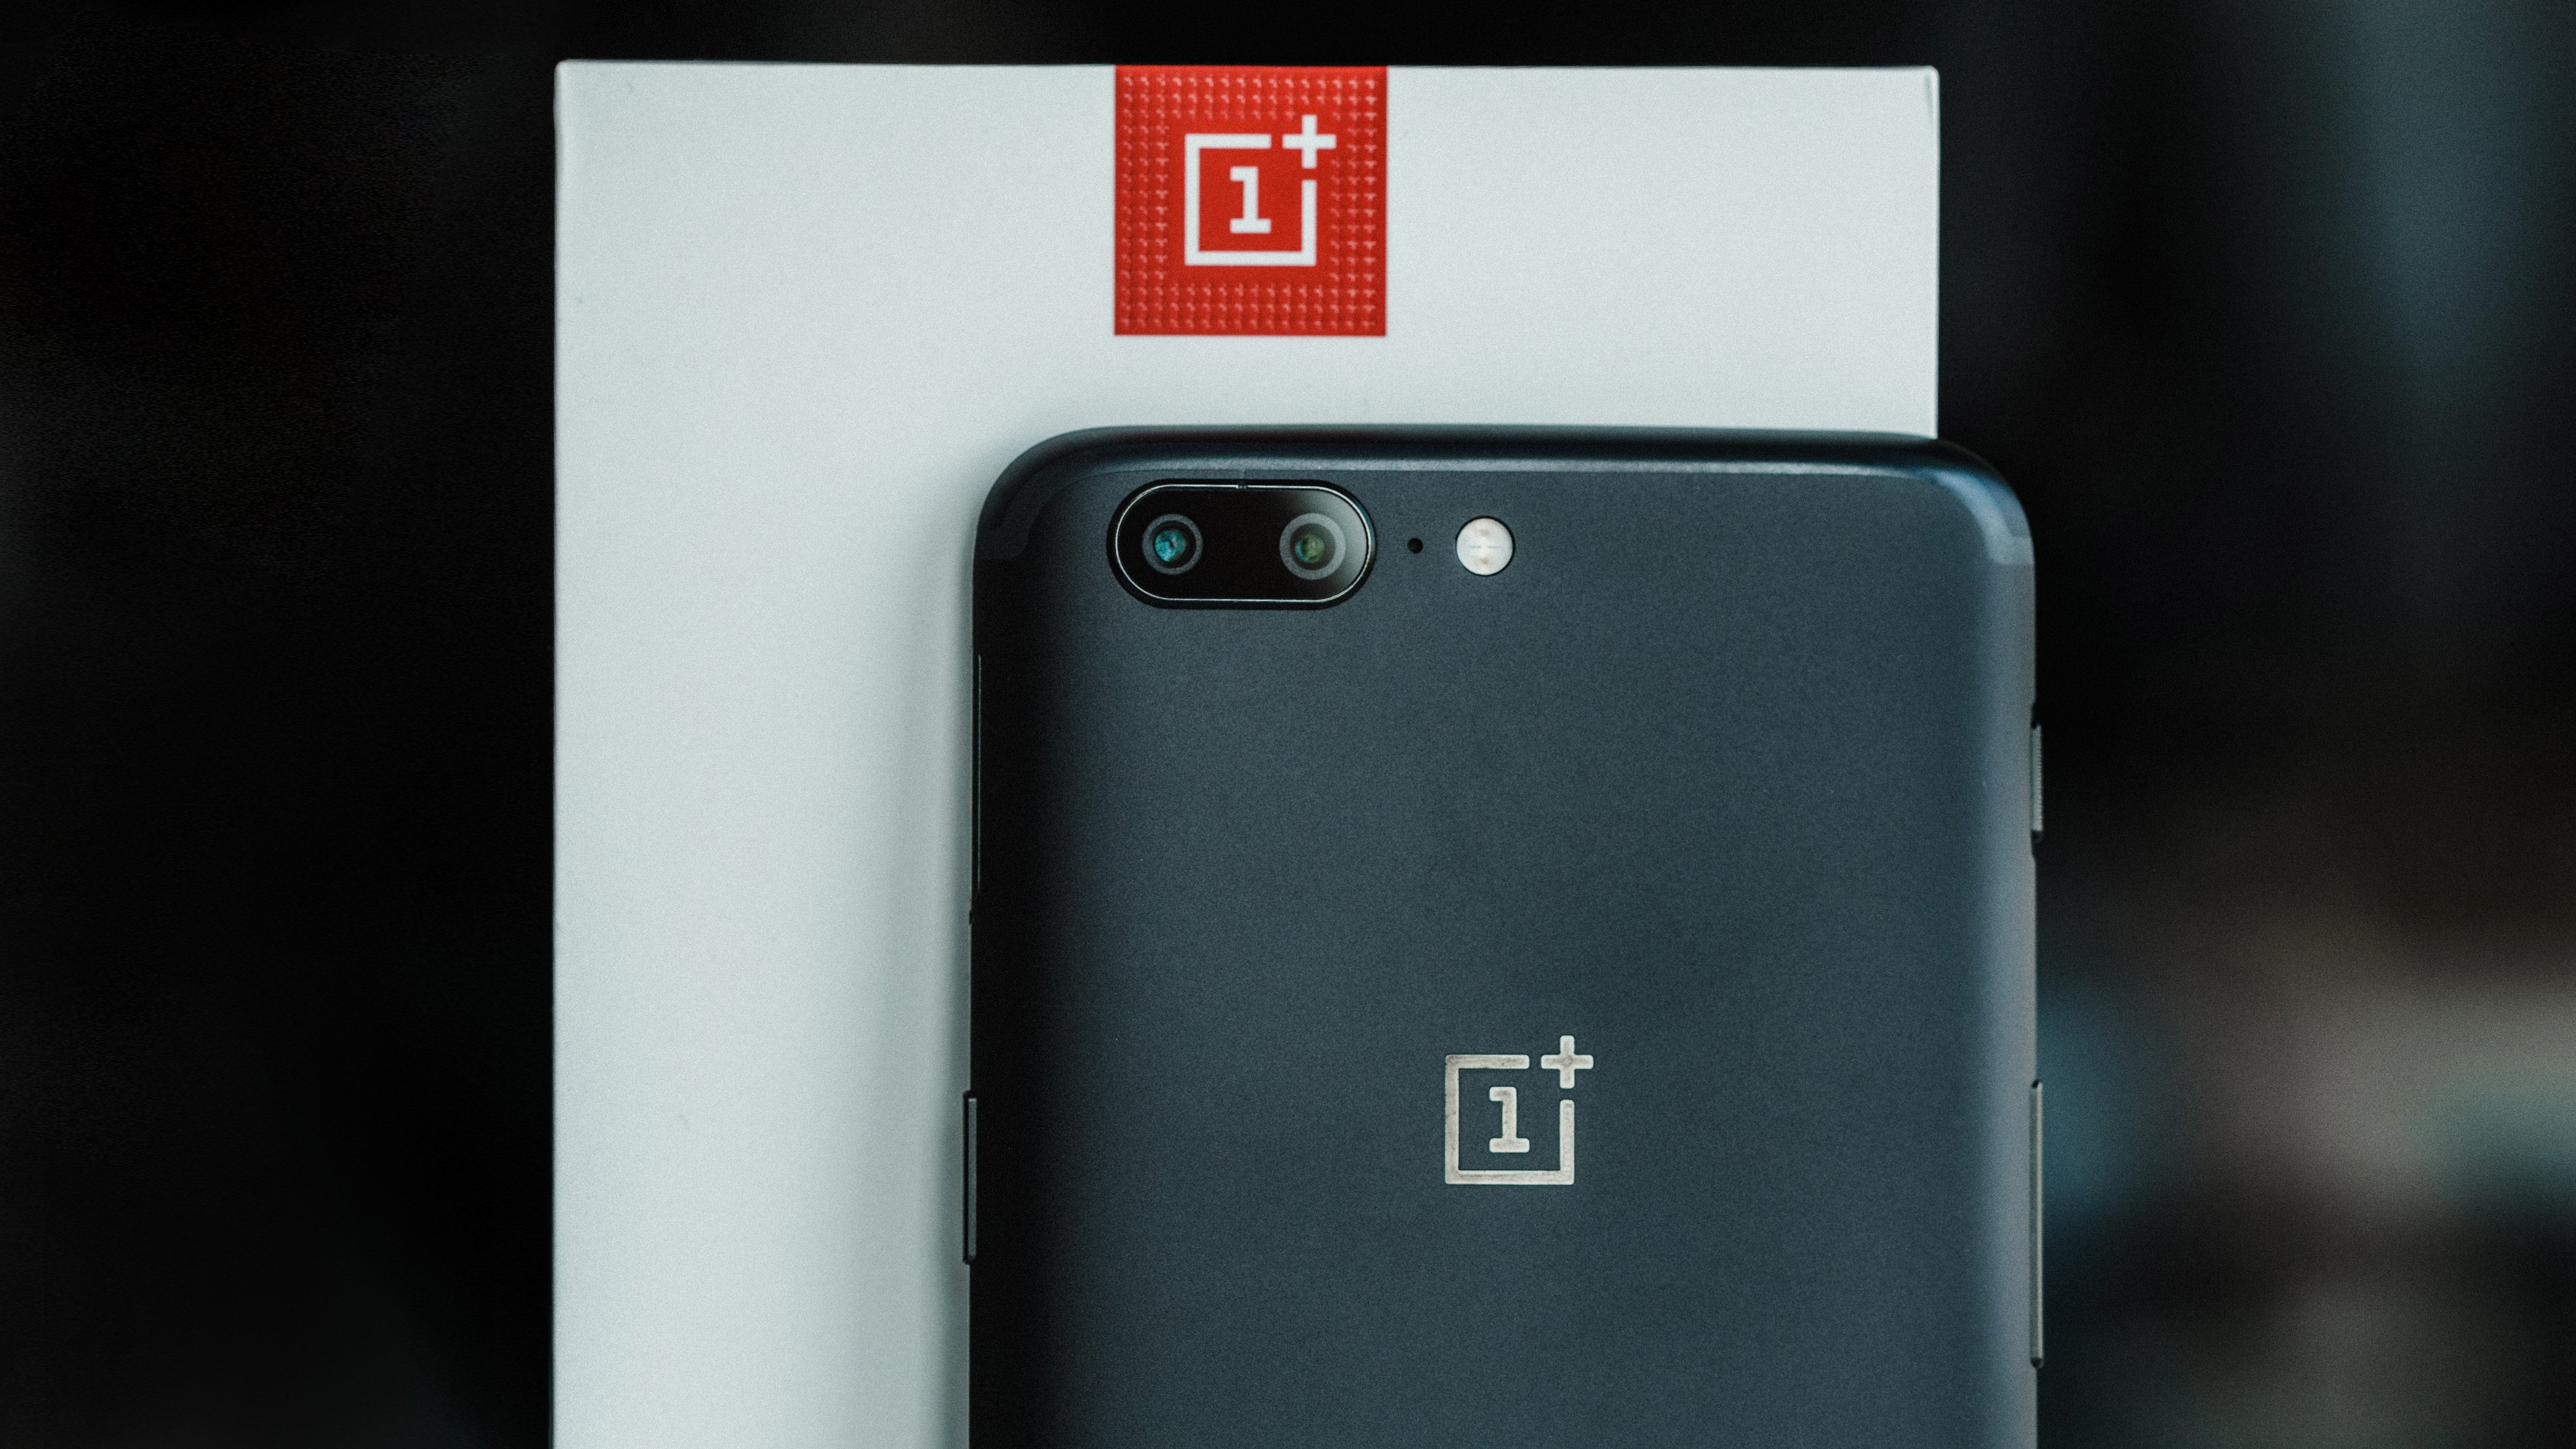 OnePlus 5 review: A clear title contender